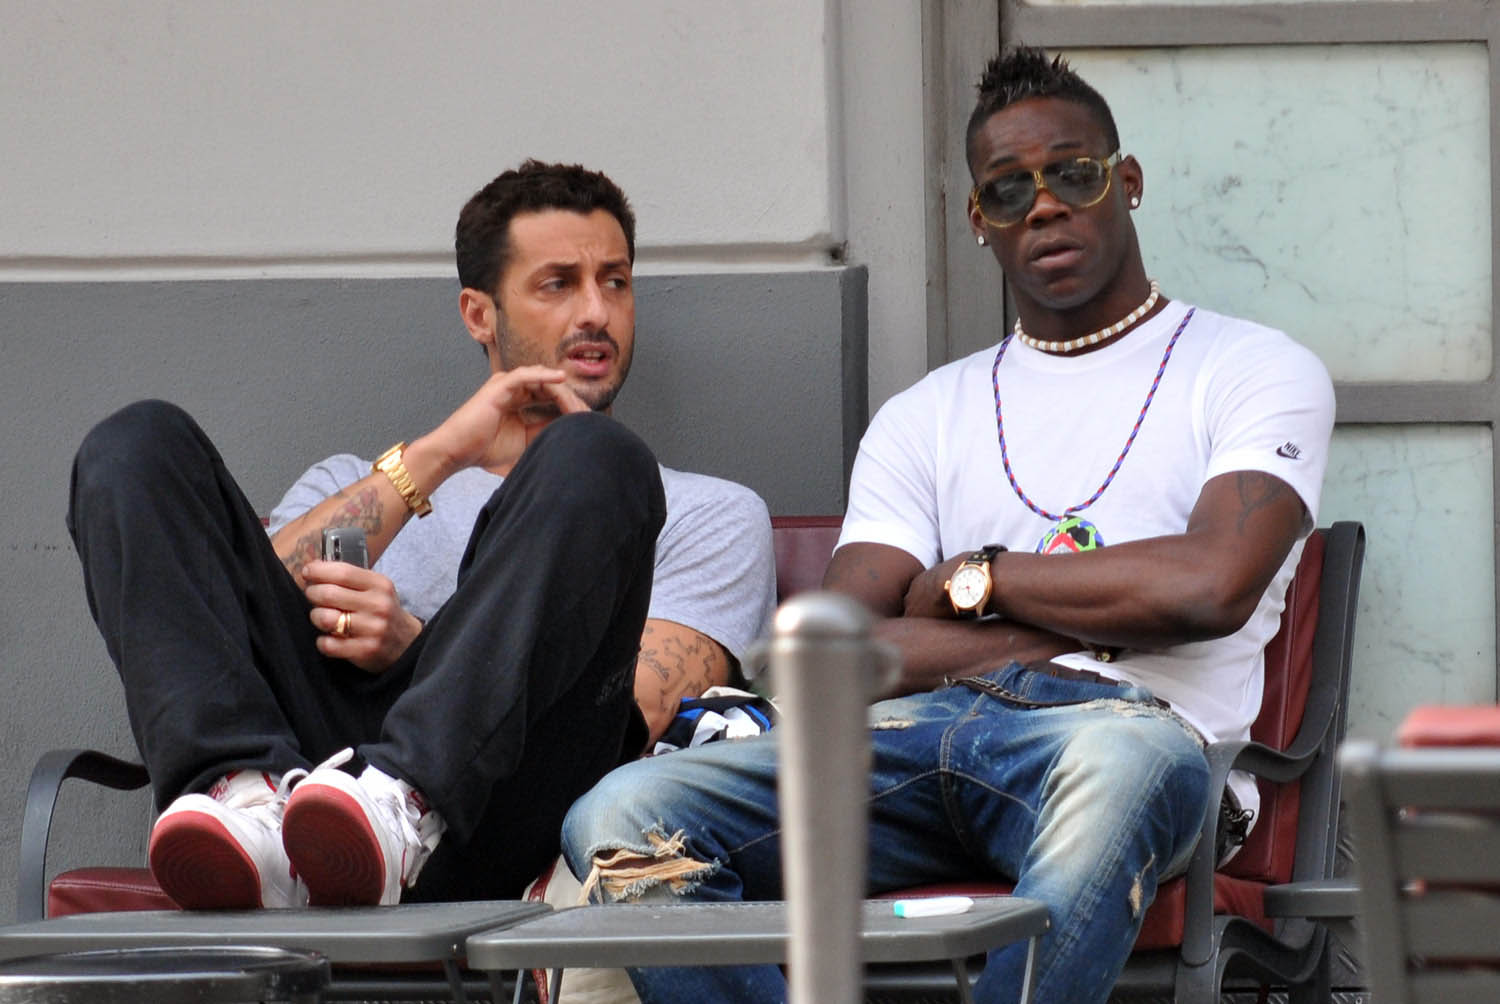 Fabrizio Corona and Mario Balotelli - bad boys